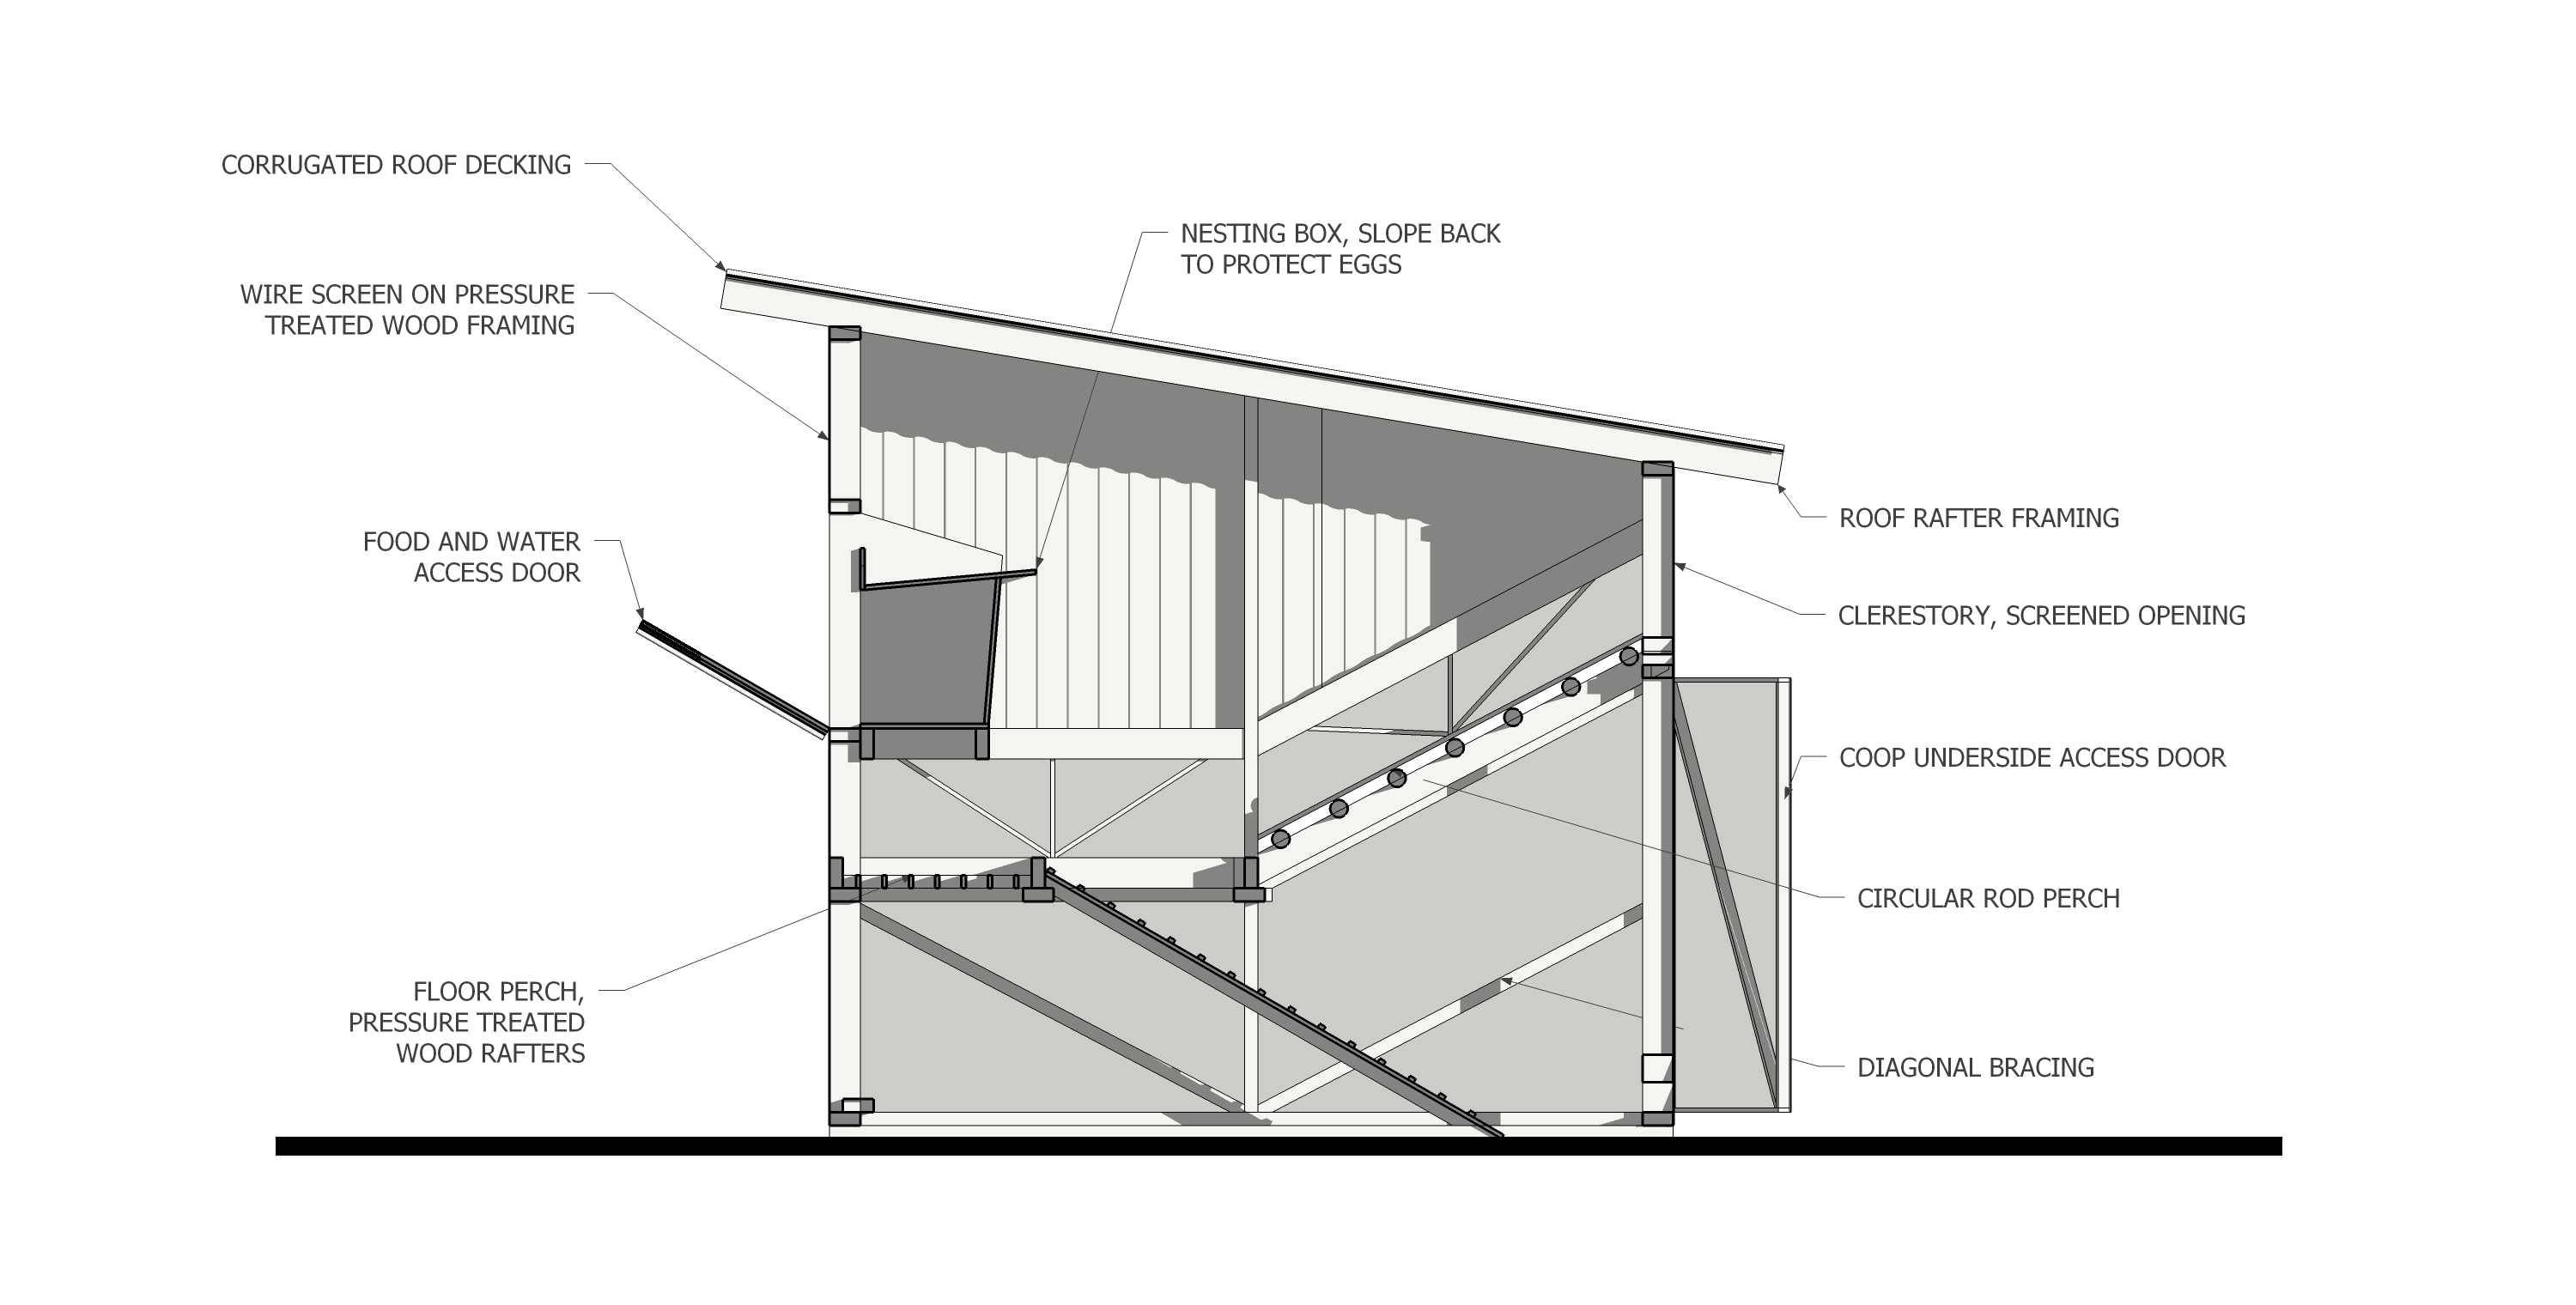 Chicken coop inside layout - photo#9